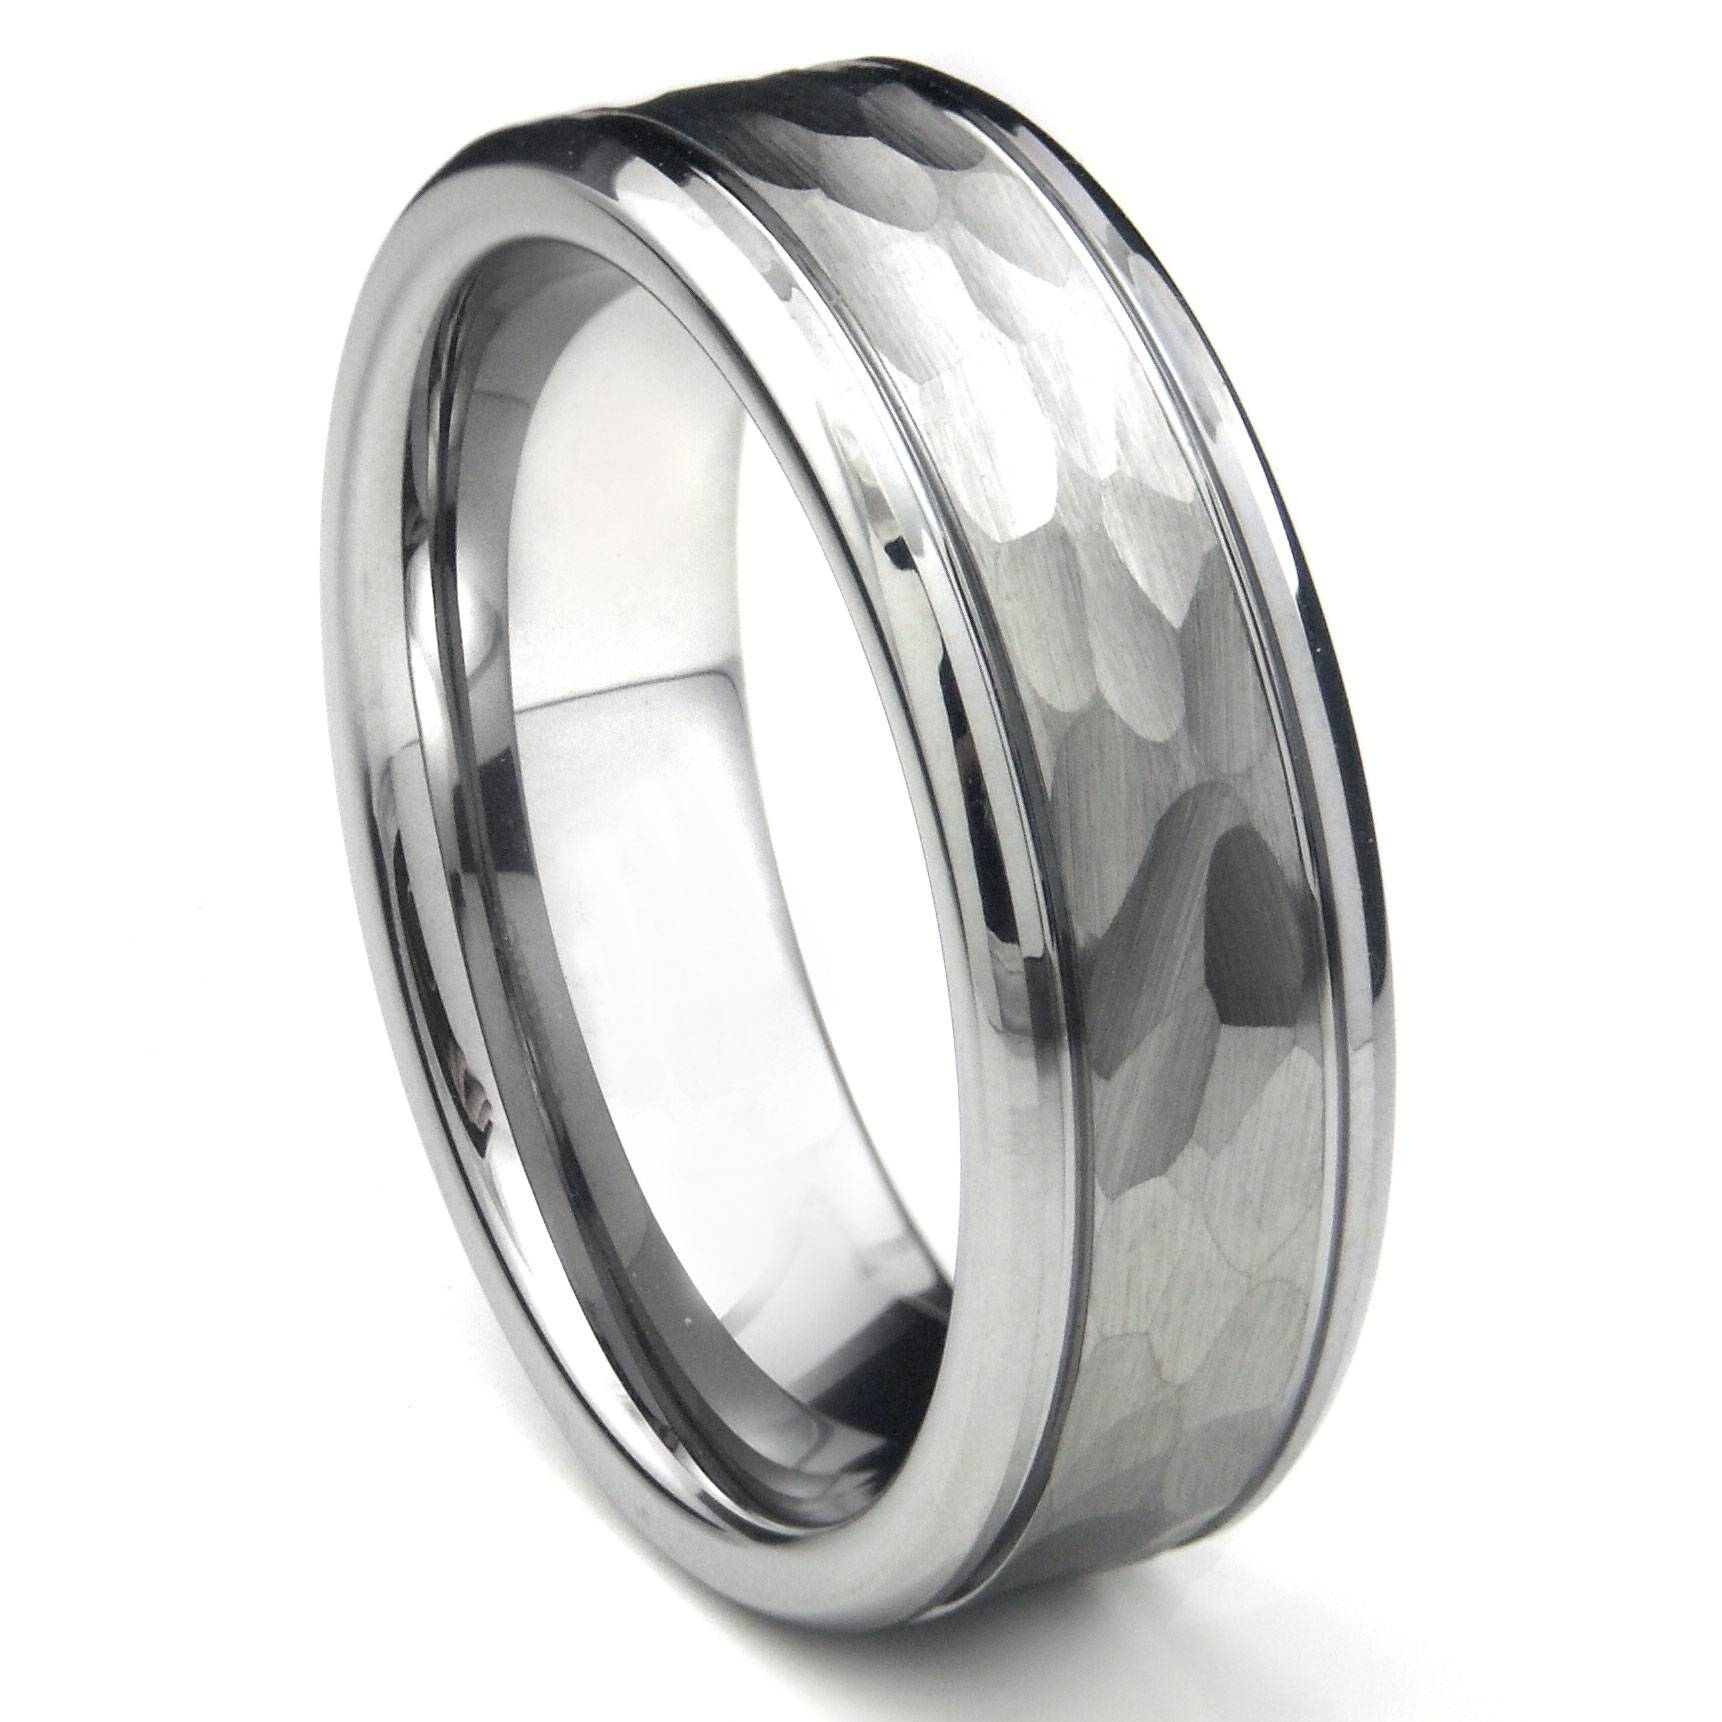 Tungsten Carbide Hammer Finish Wedding Band Ring /w Grooves Intended For Tungsten Titanium Wedding Bands (View 6 of 15)